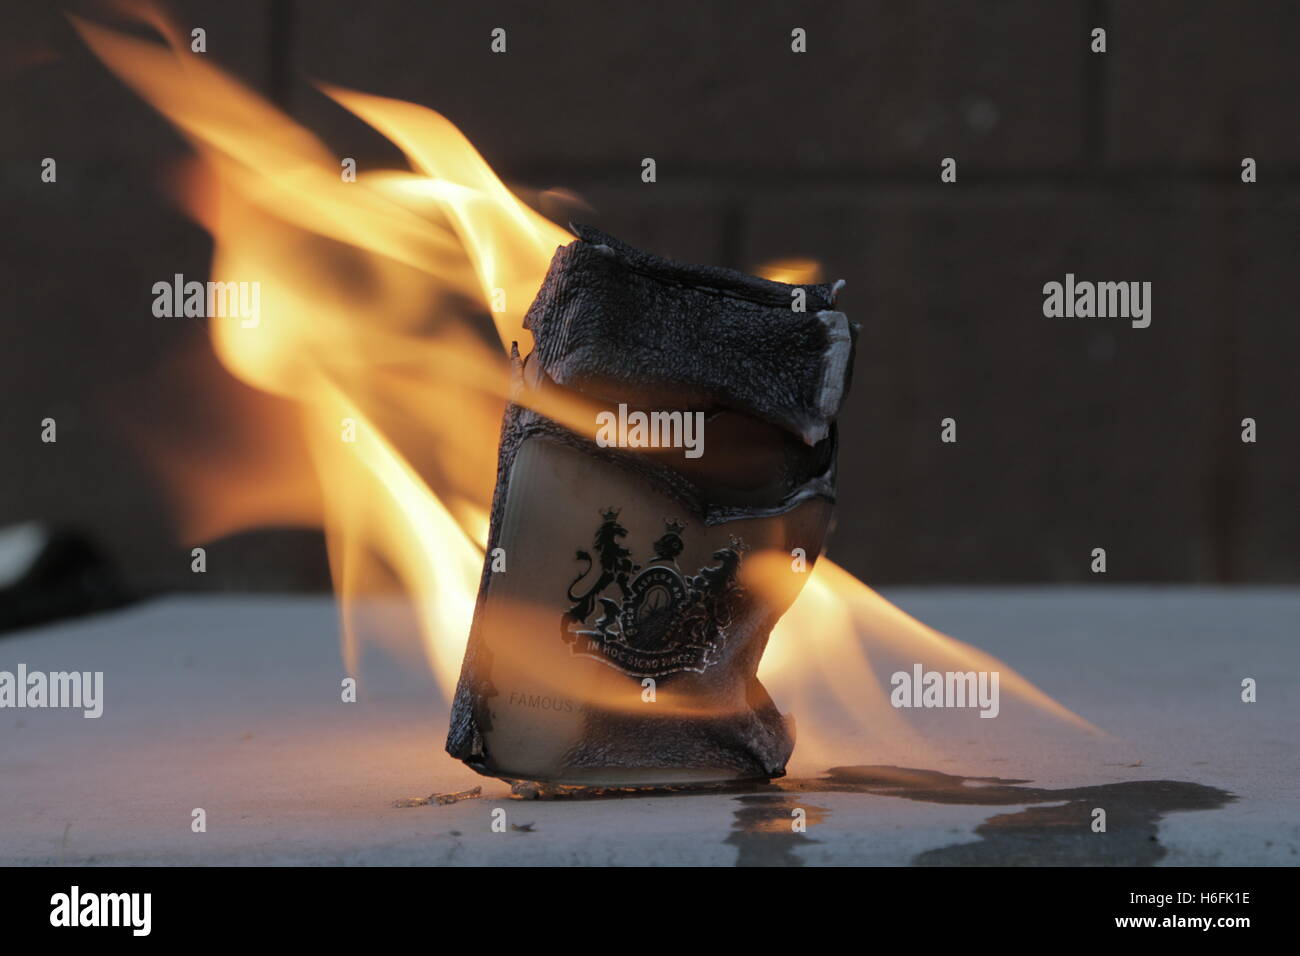 cancer on fire - Stock Image